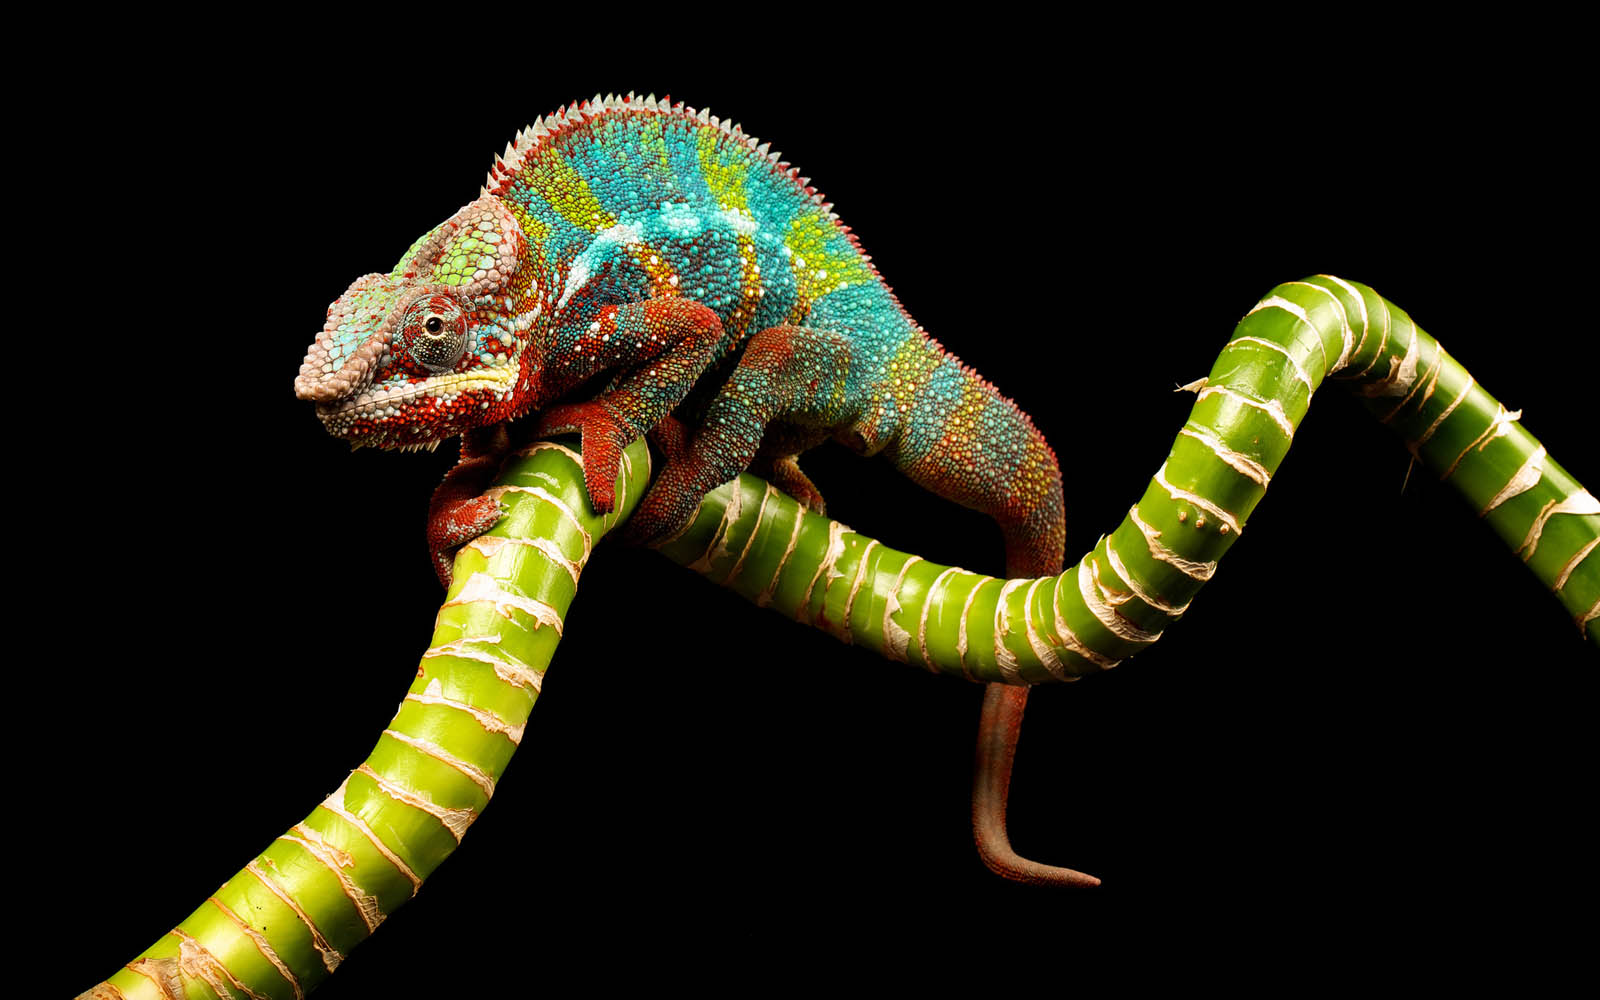 Tag: Chameleon Wallpapers, Backgrounds, Photos,Images and Pictures for ...